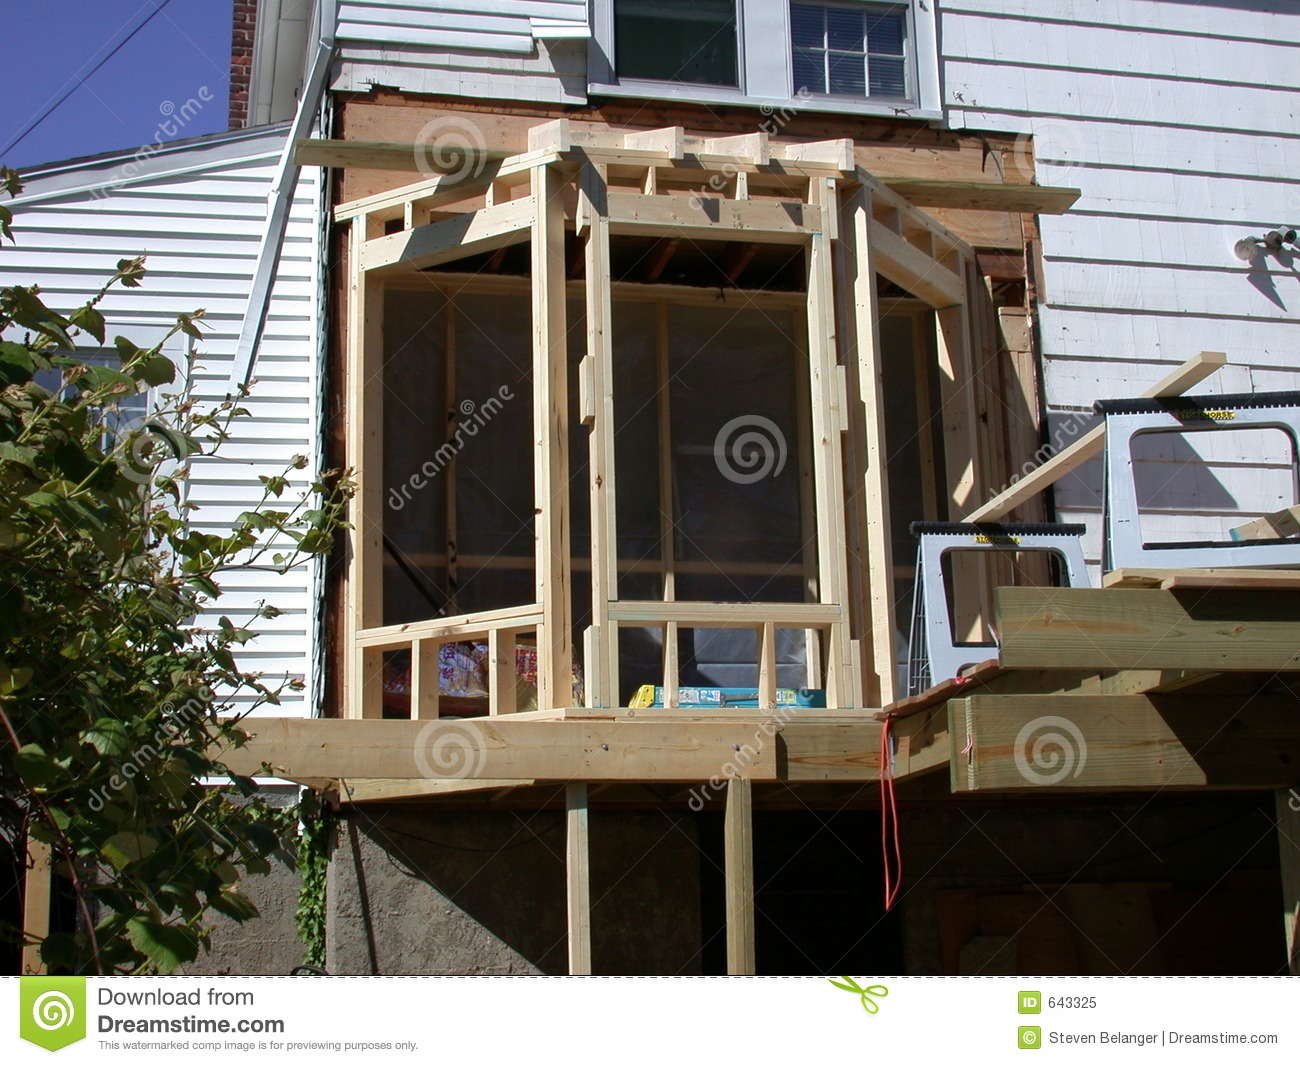 Bay window construction stock image image of residential for Bay window construction details